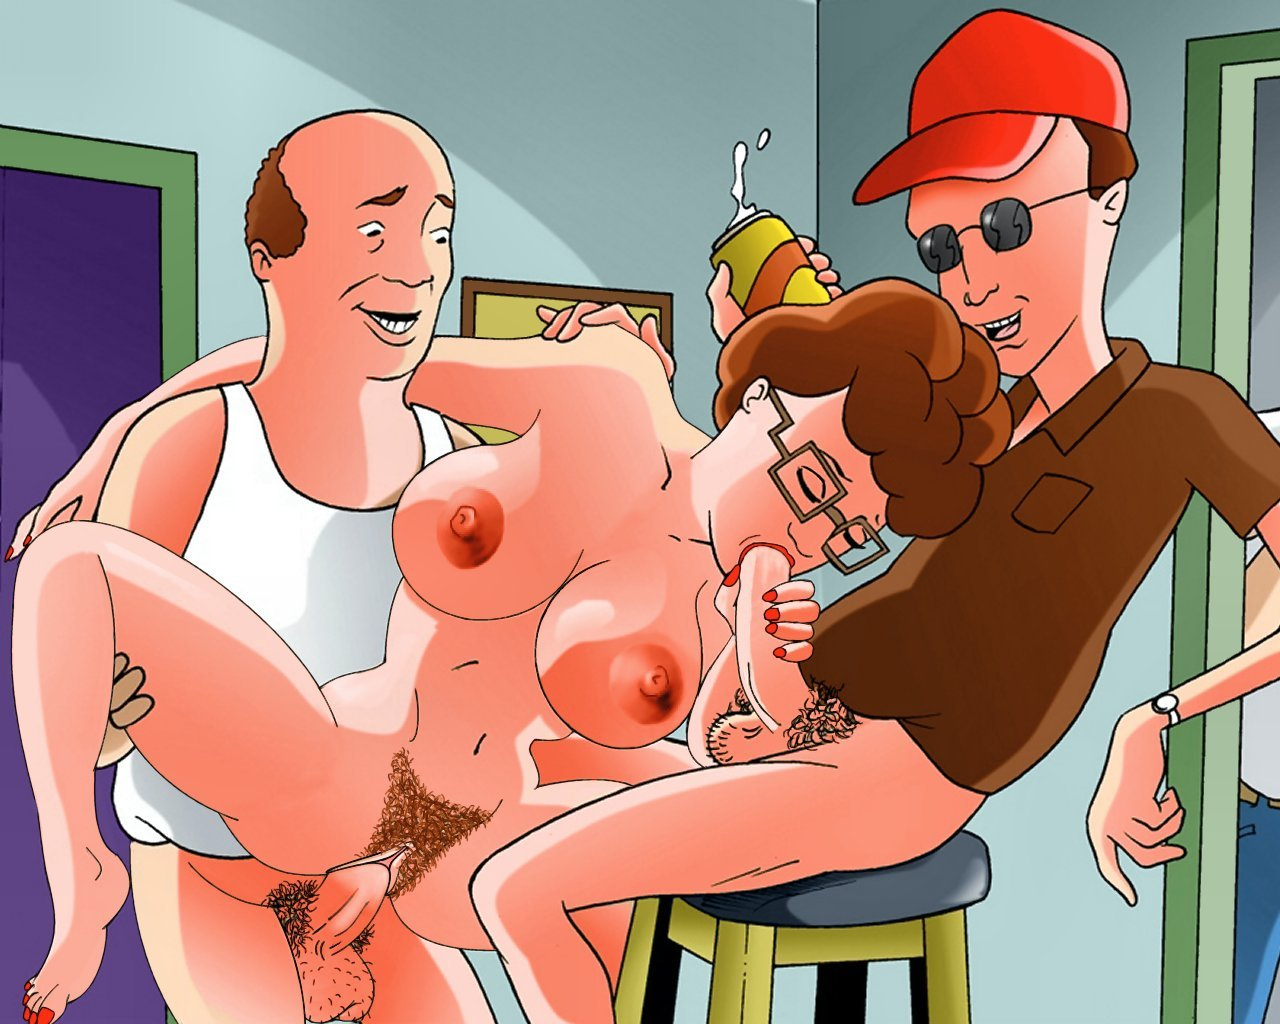 King and slave cartoon porn hentay download